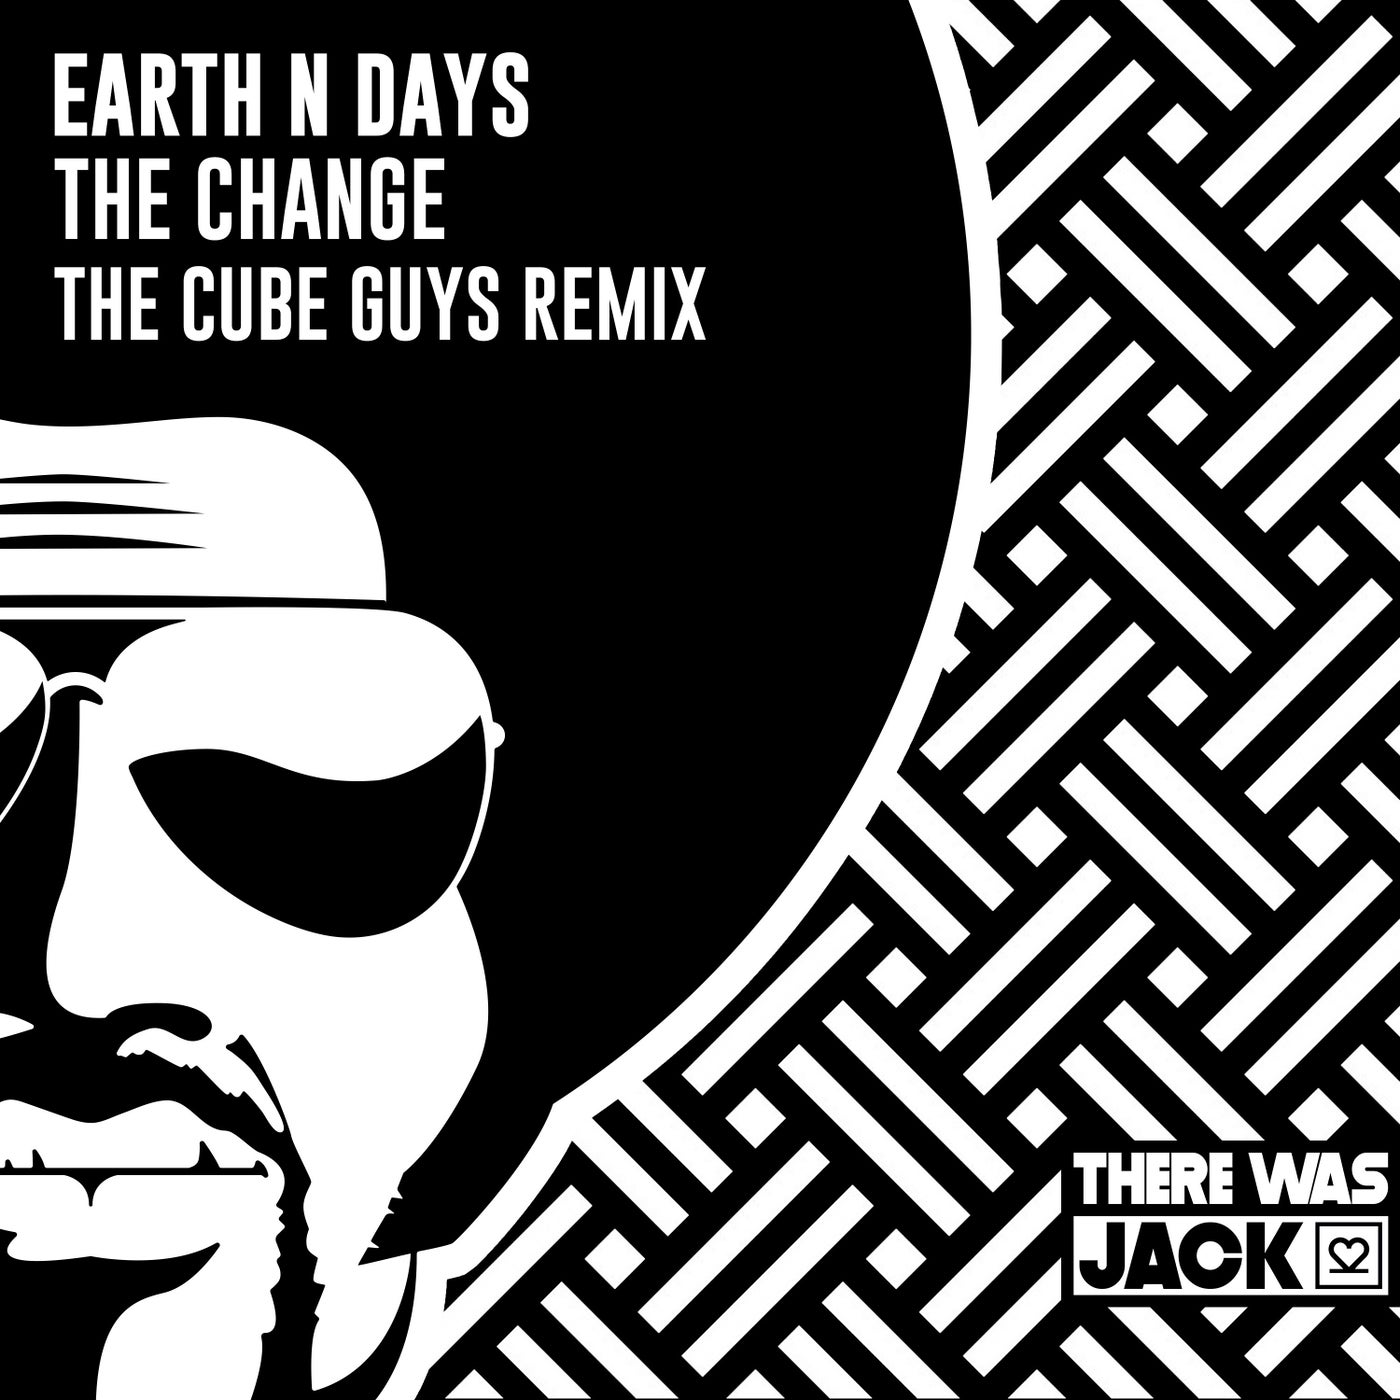 The Change (The Cube Guys Remix)